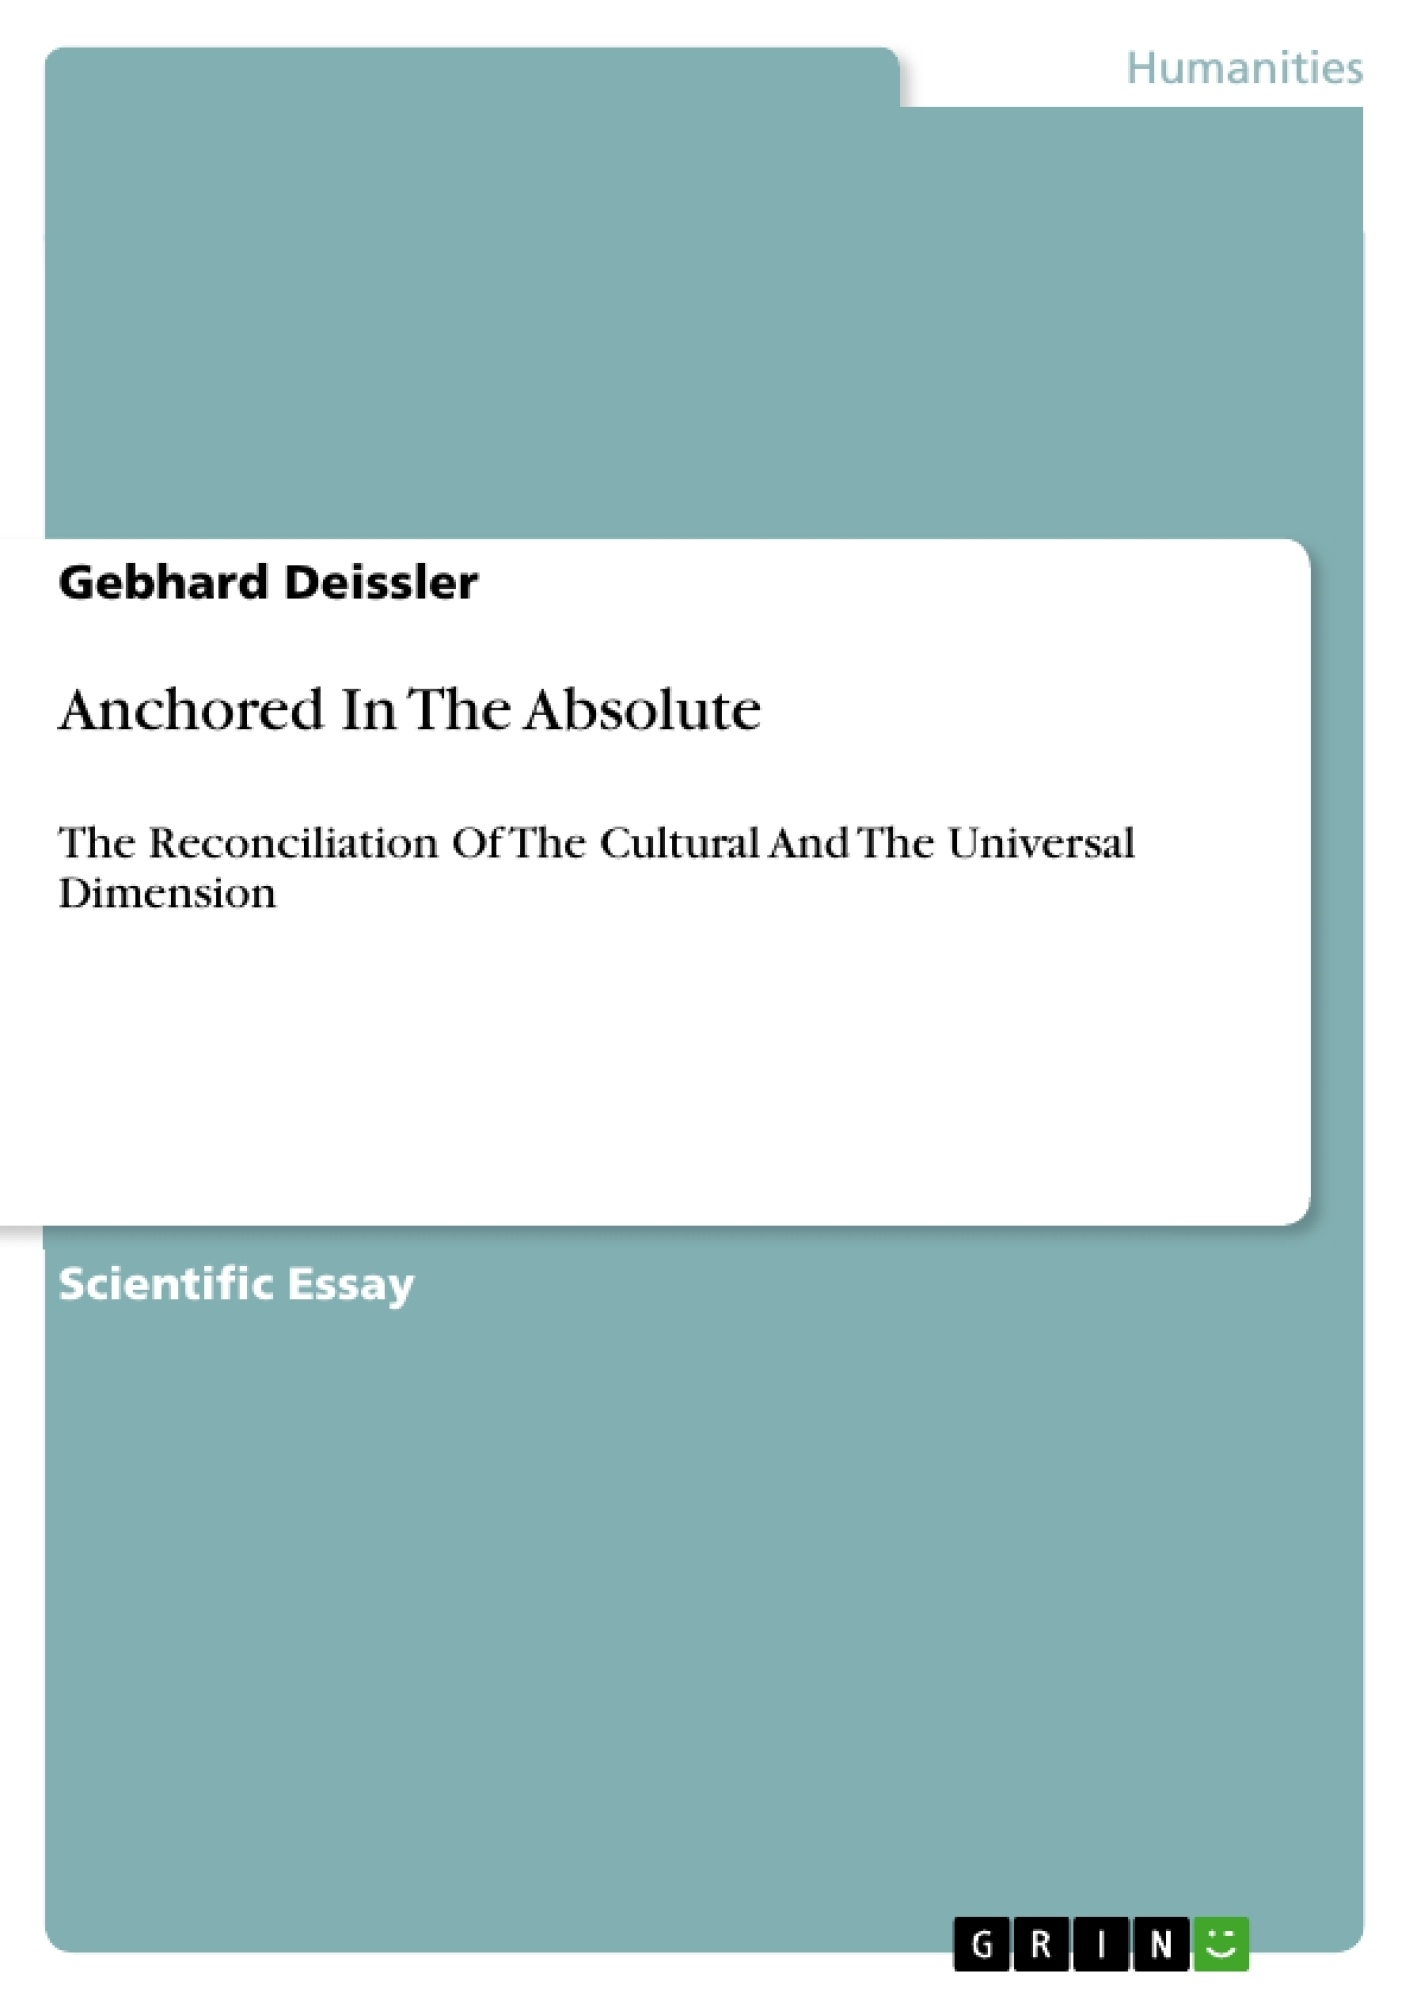 Title: Anchored In The Absolute